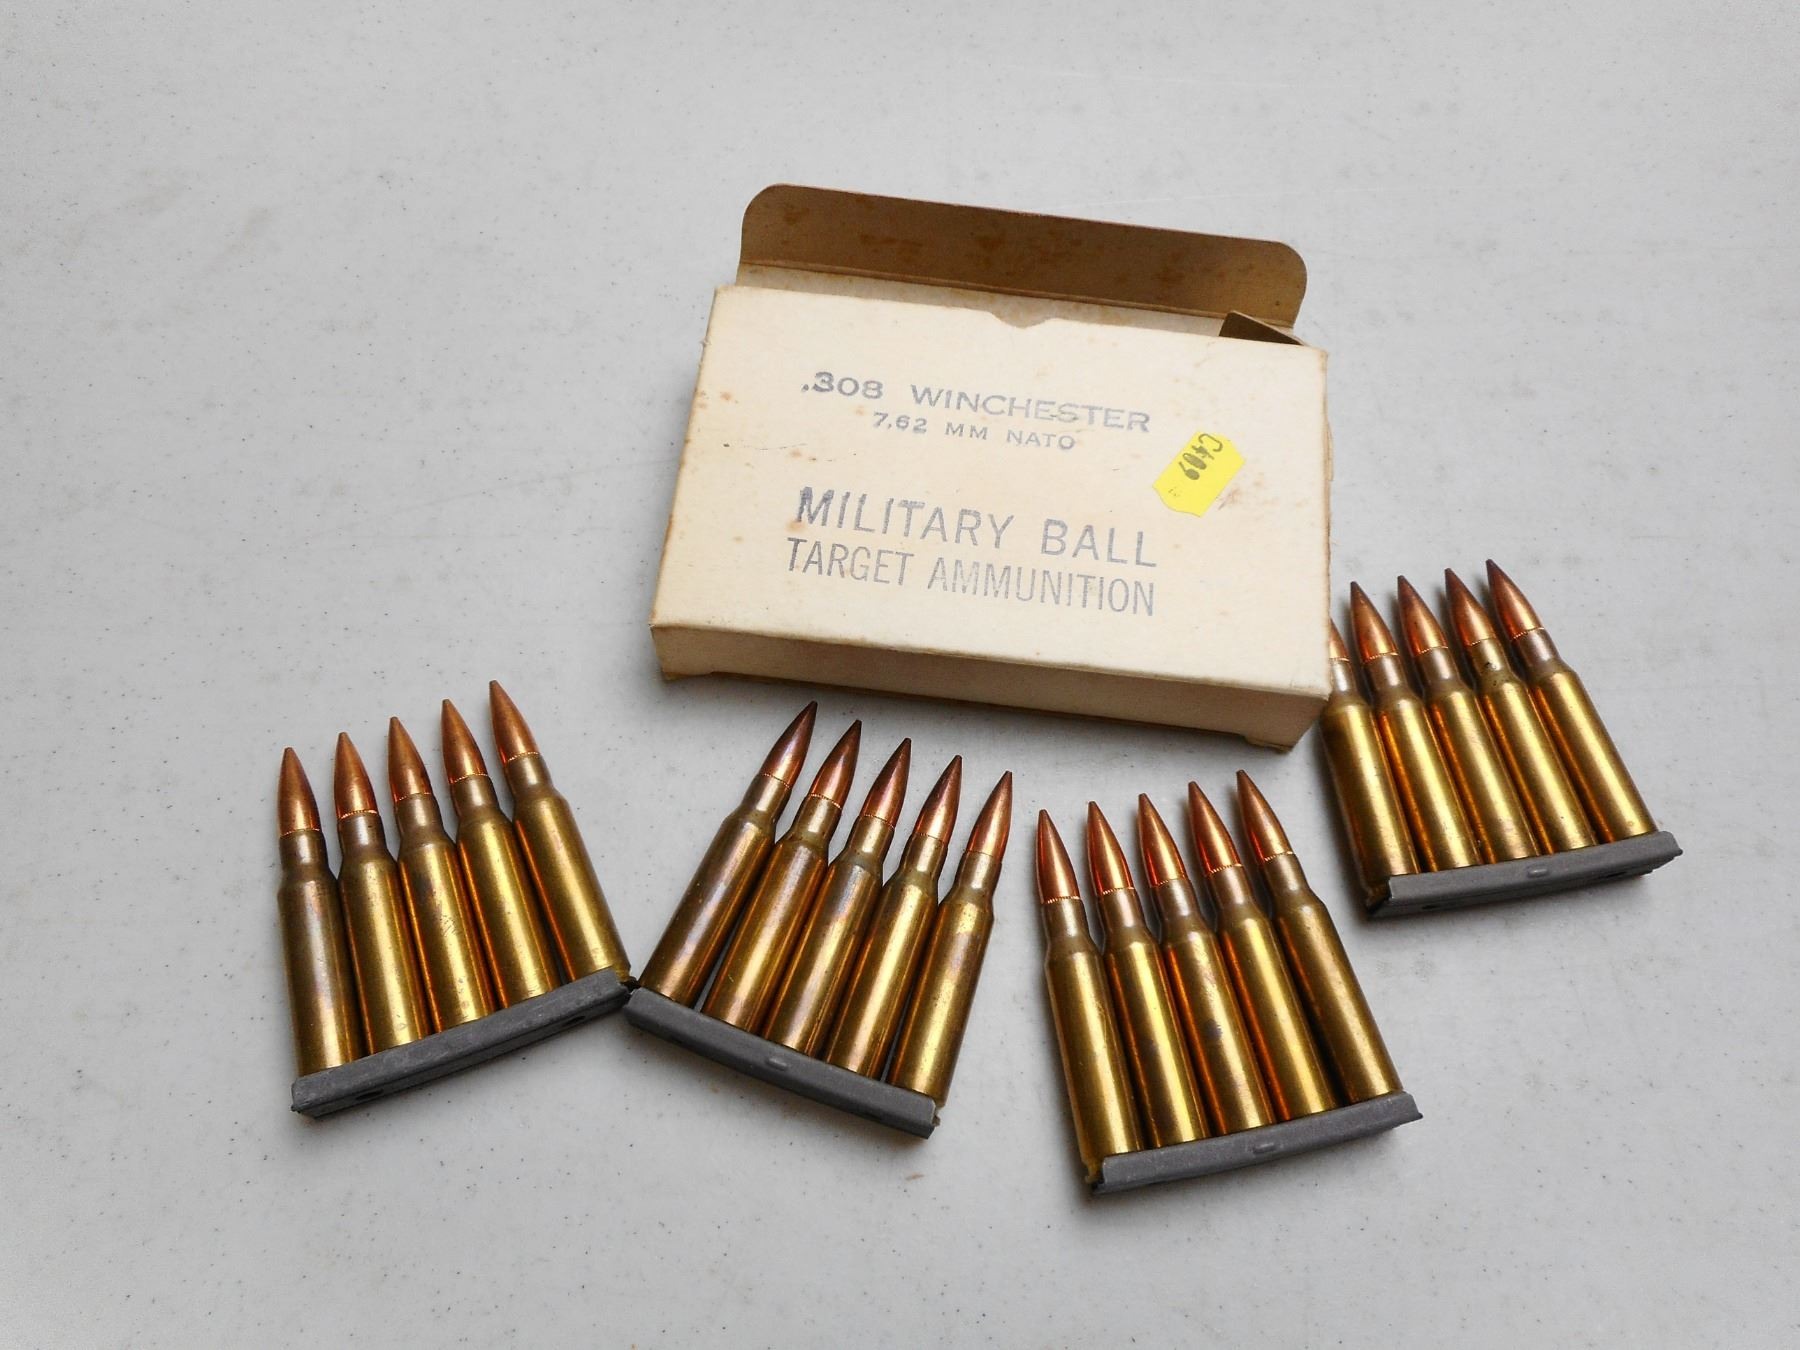 MILITARY SURPLUS 7 62MM NATO (308 WIN) AMMO